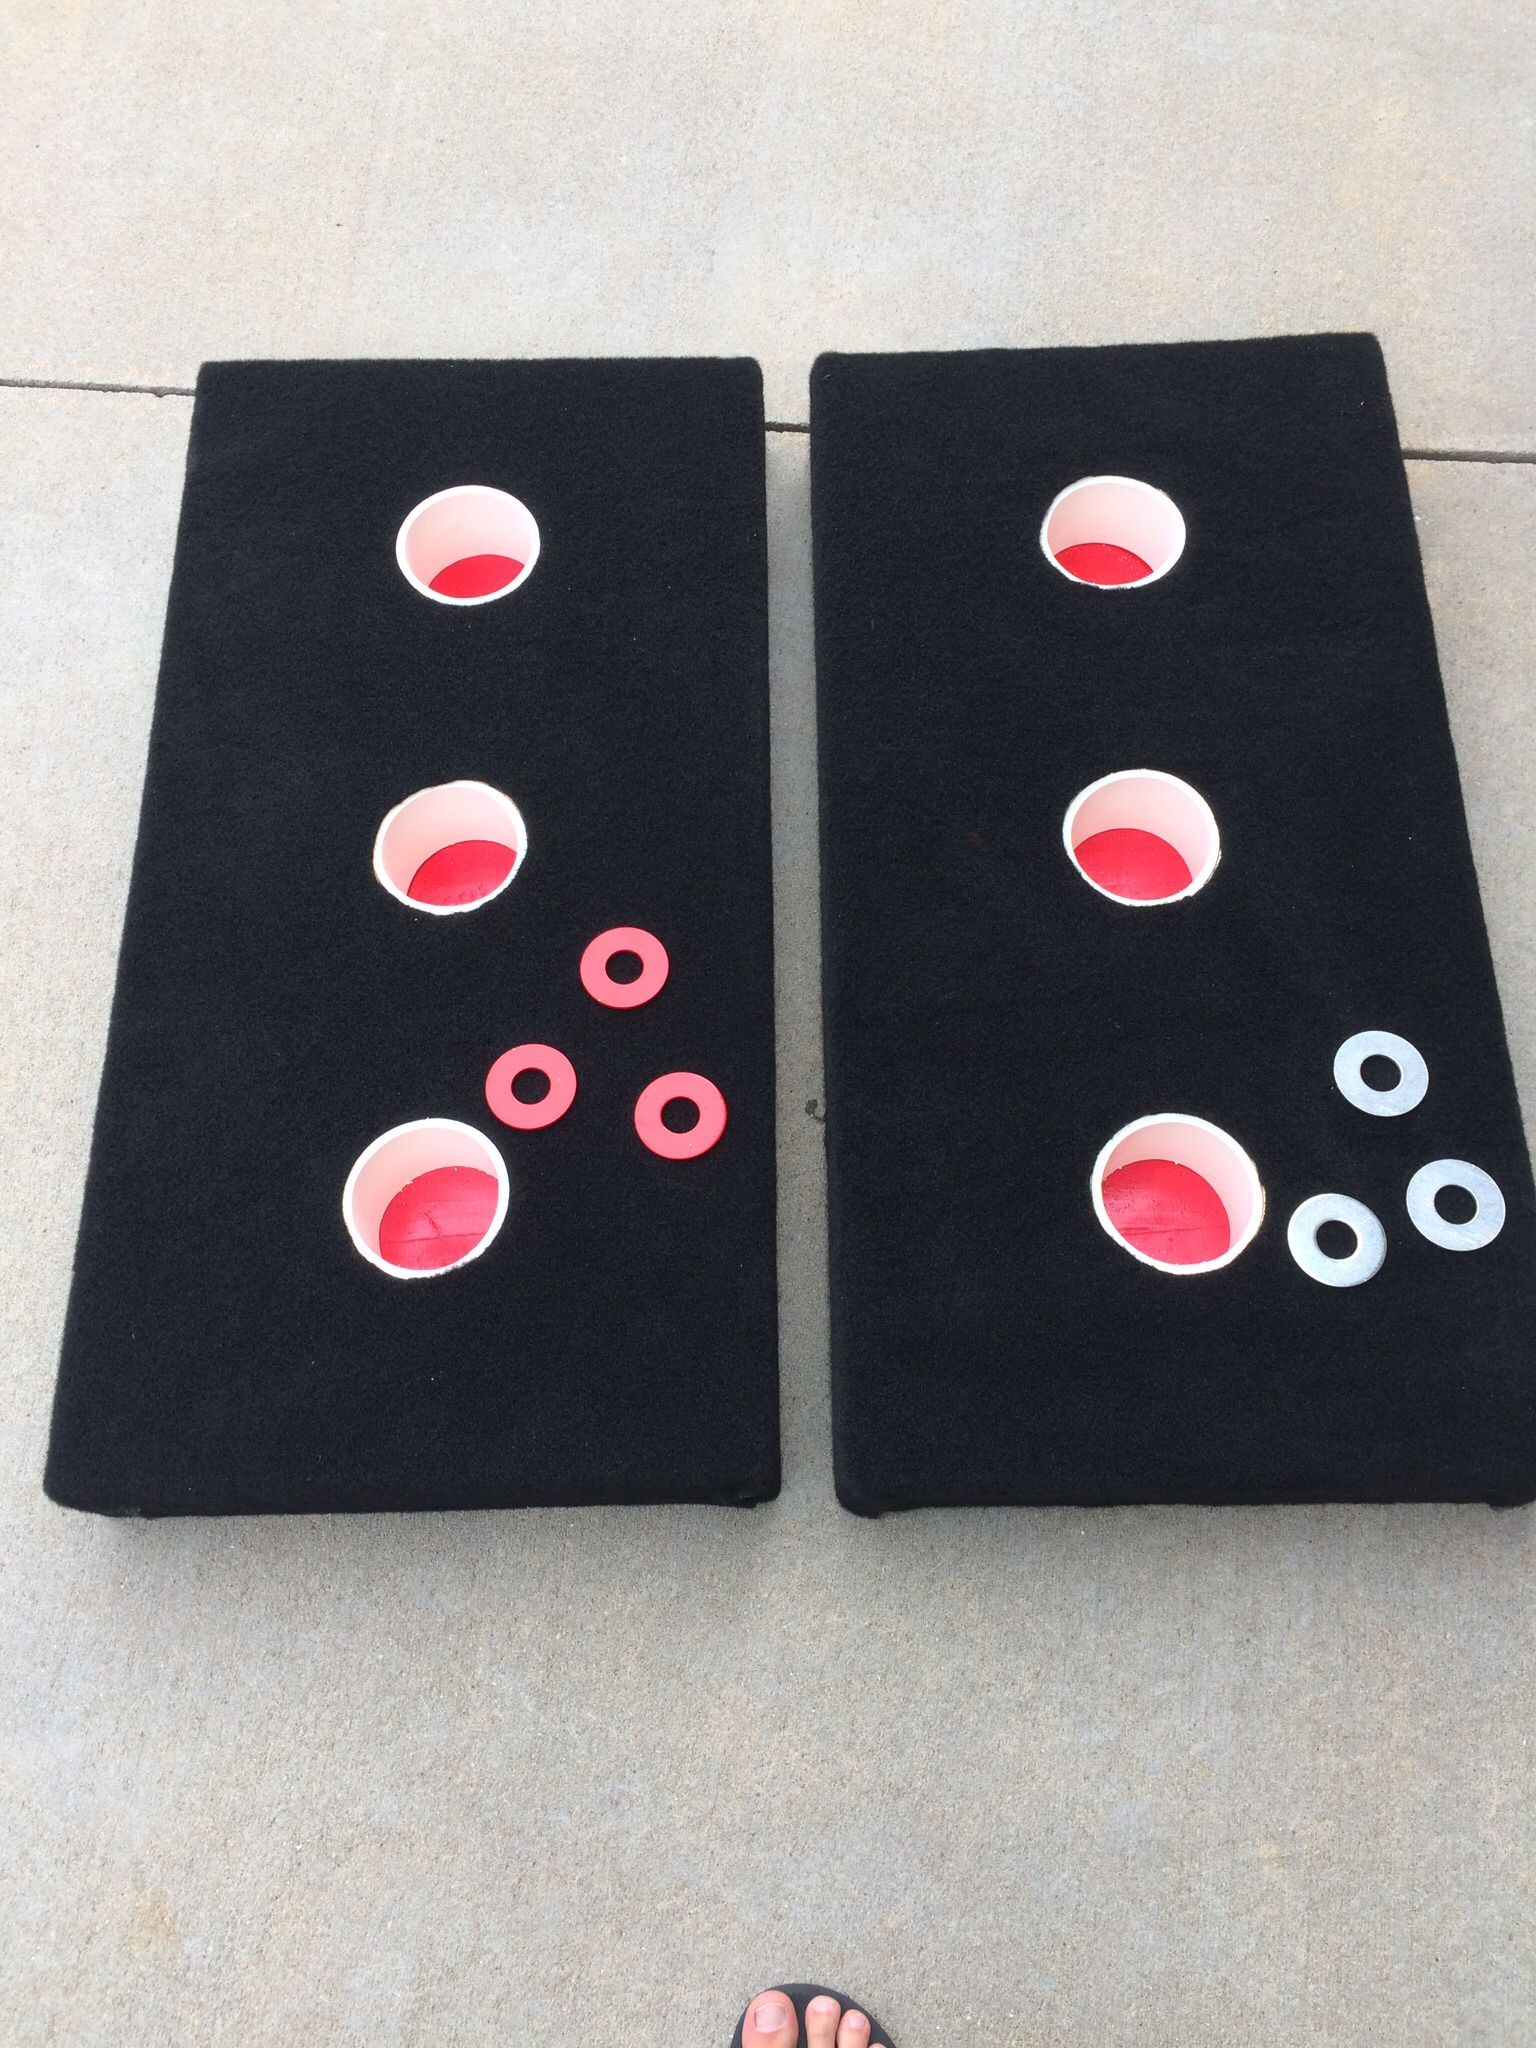 3 hole washer game aka fat penny for the husker fans my